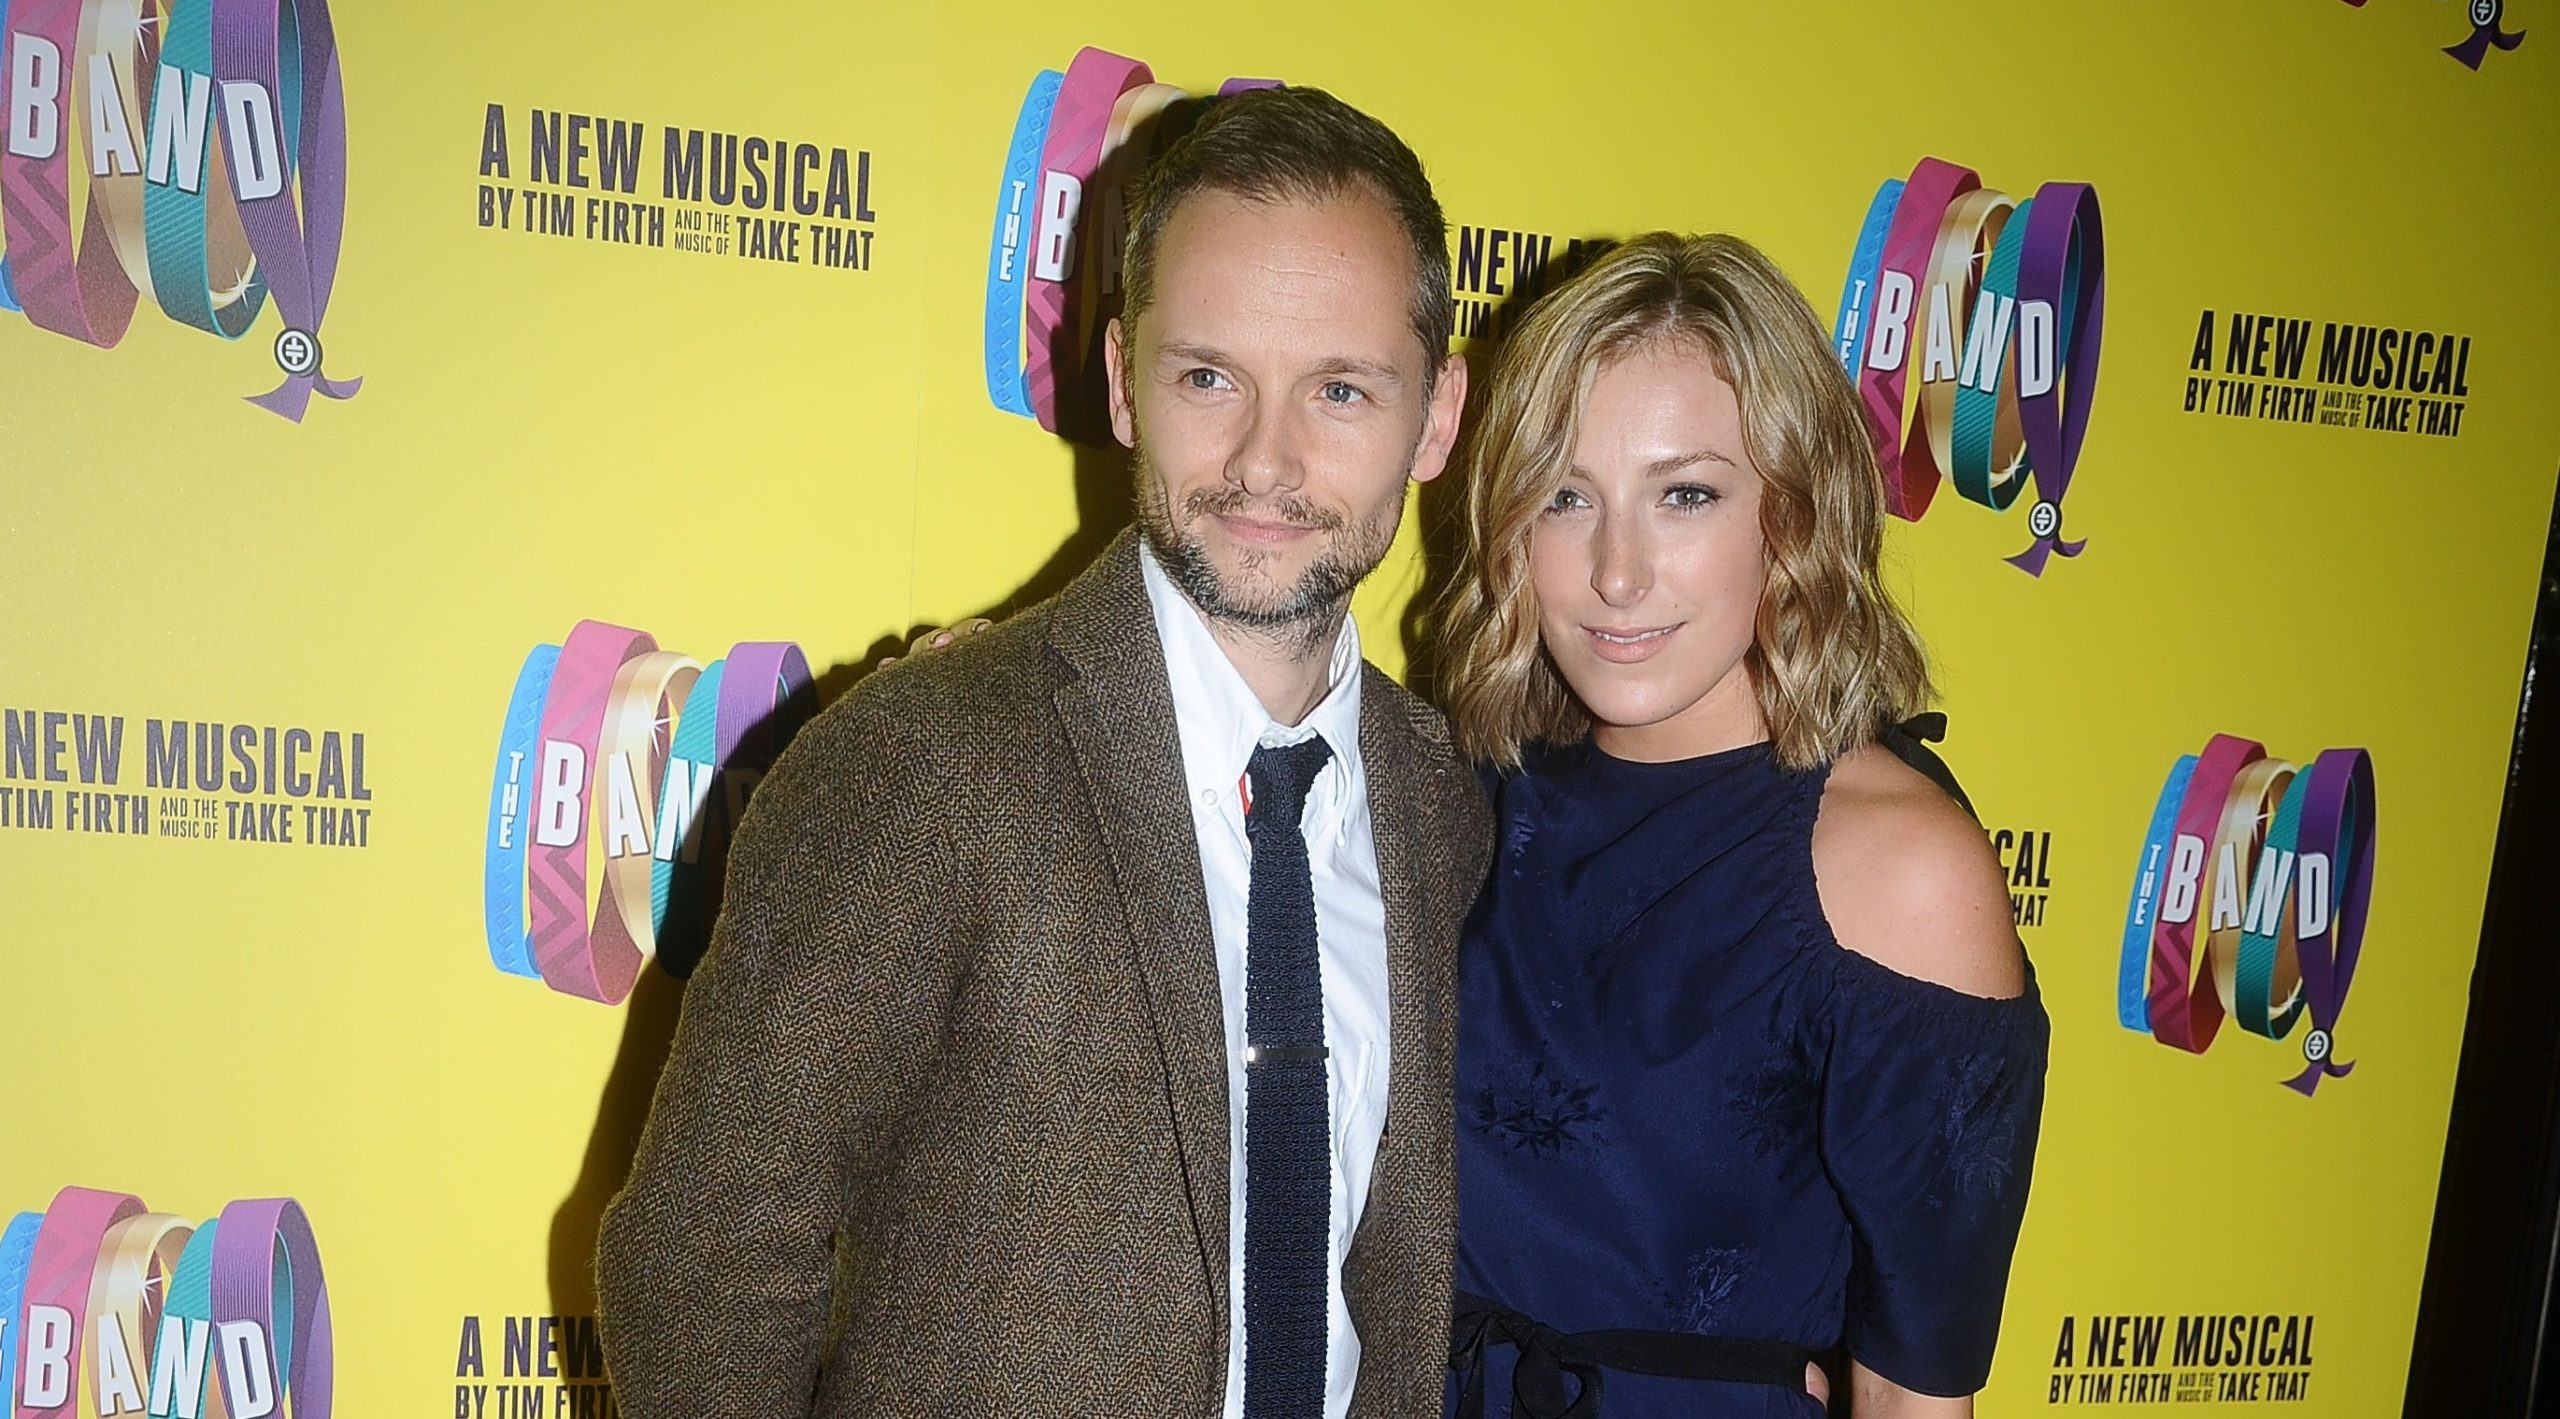 Former EastEnders and Holby City star Jack Ryder expecting first child